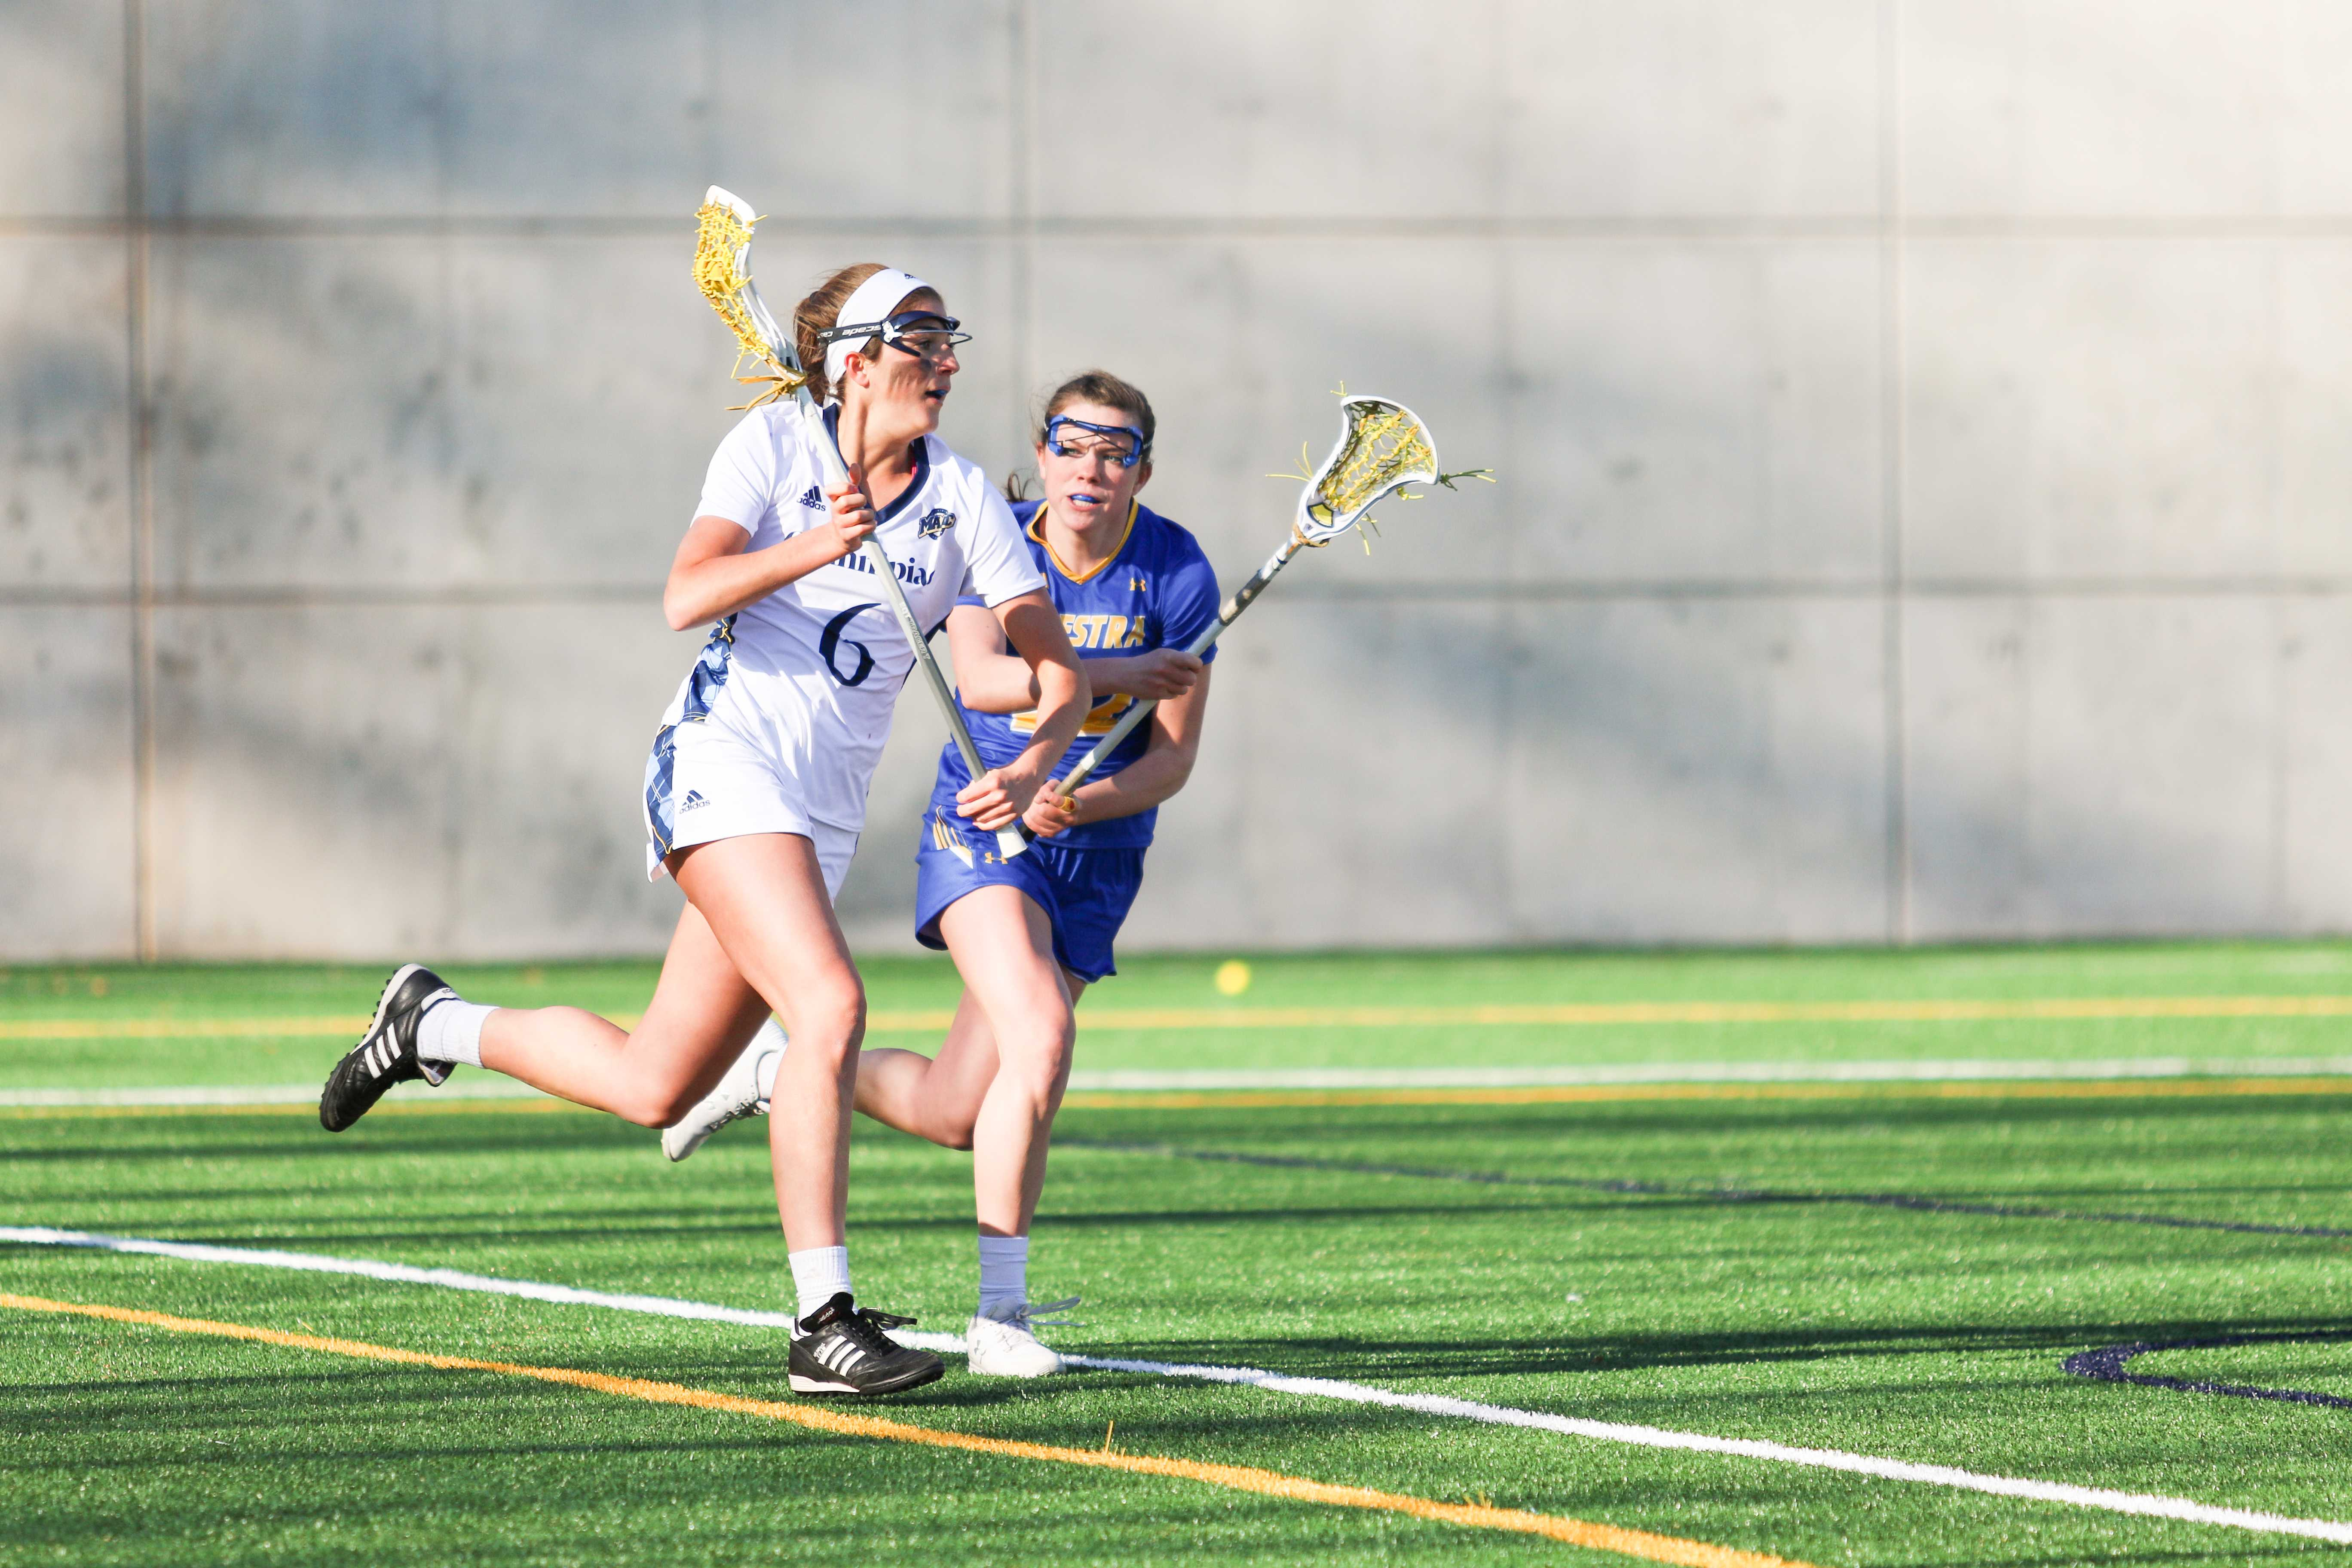 Quinnipiac women's lacrosse defeated by Hofstra at home, 13-4